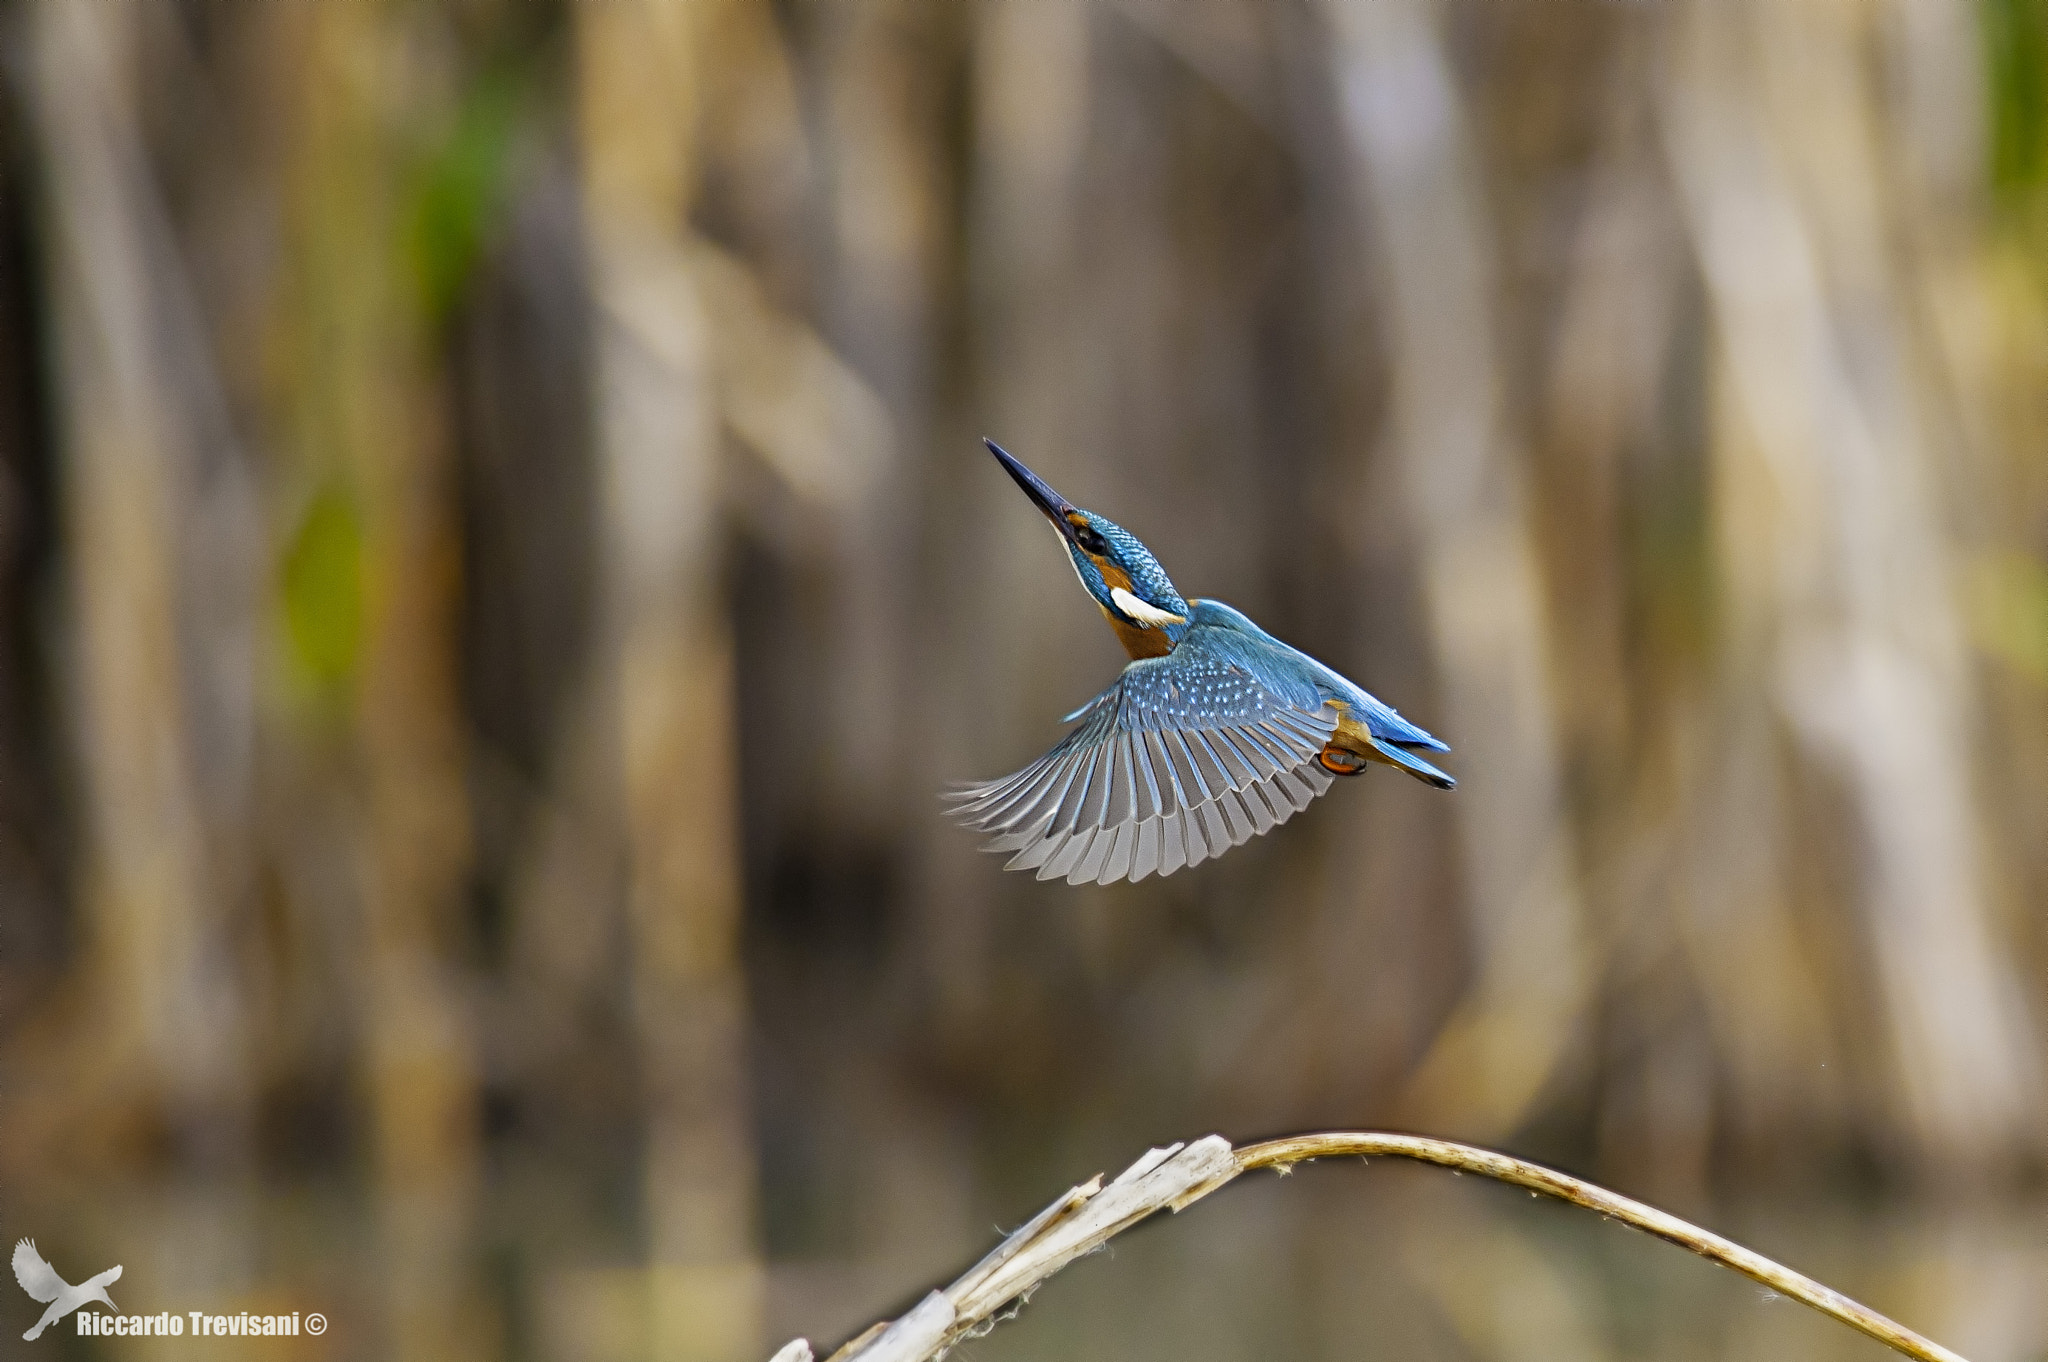 Photograph kingfisher flying by Riccardo Trevisani on 500px